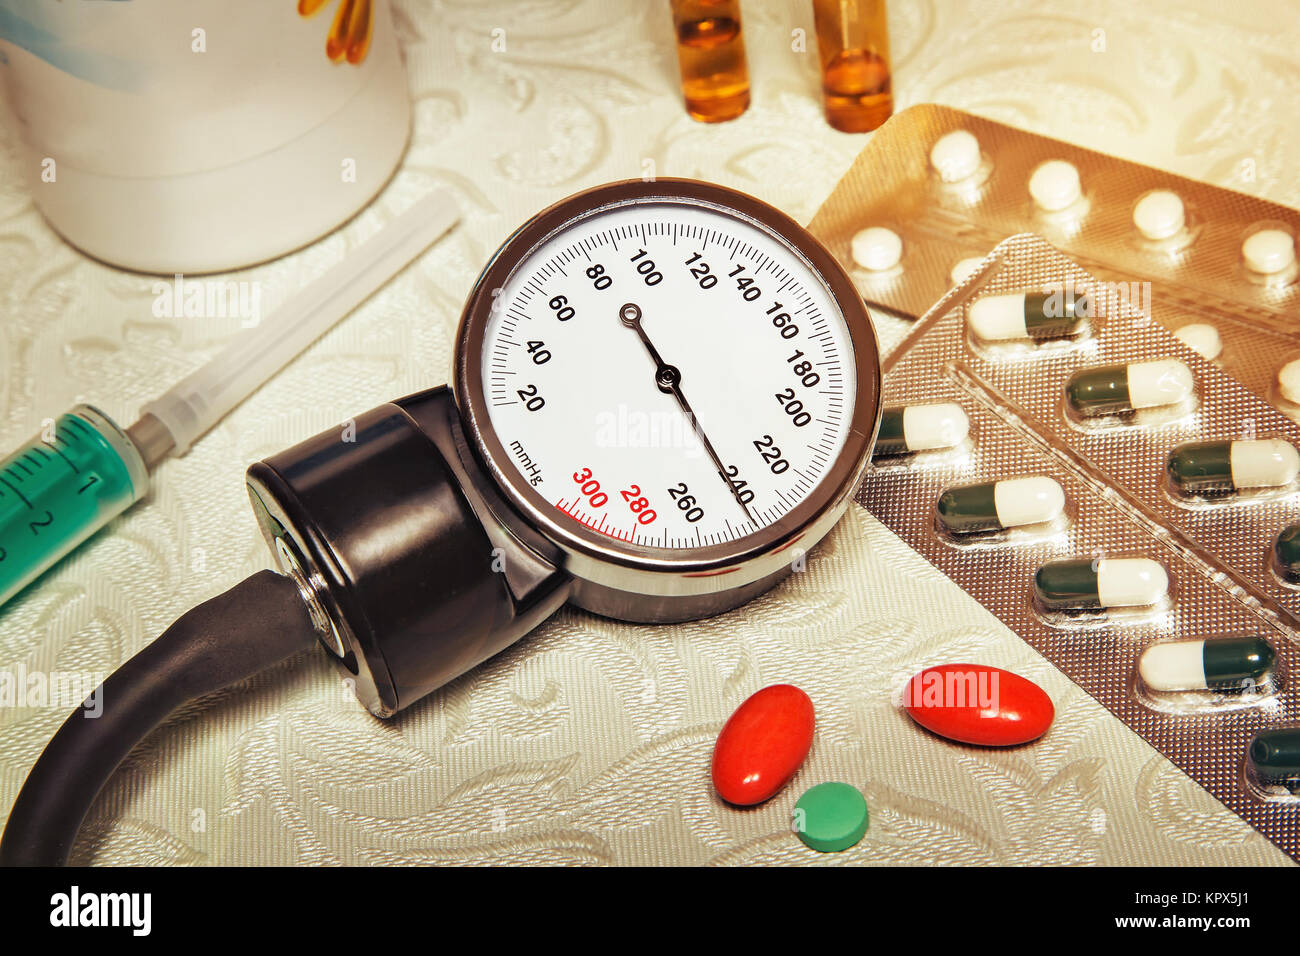 High blood pressure - hypertensive crisis and medications to treat. - Stock Image